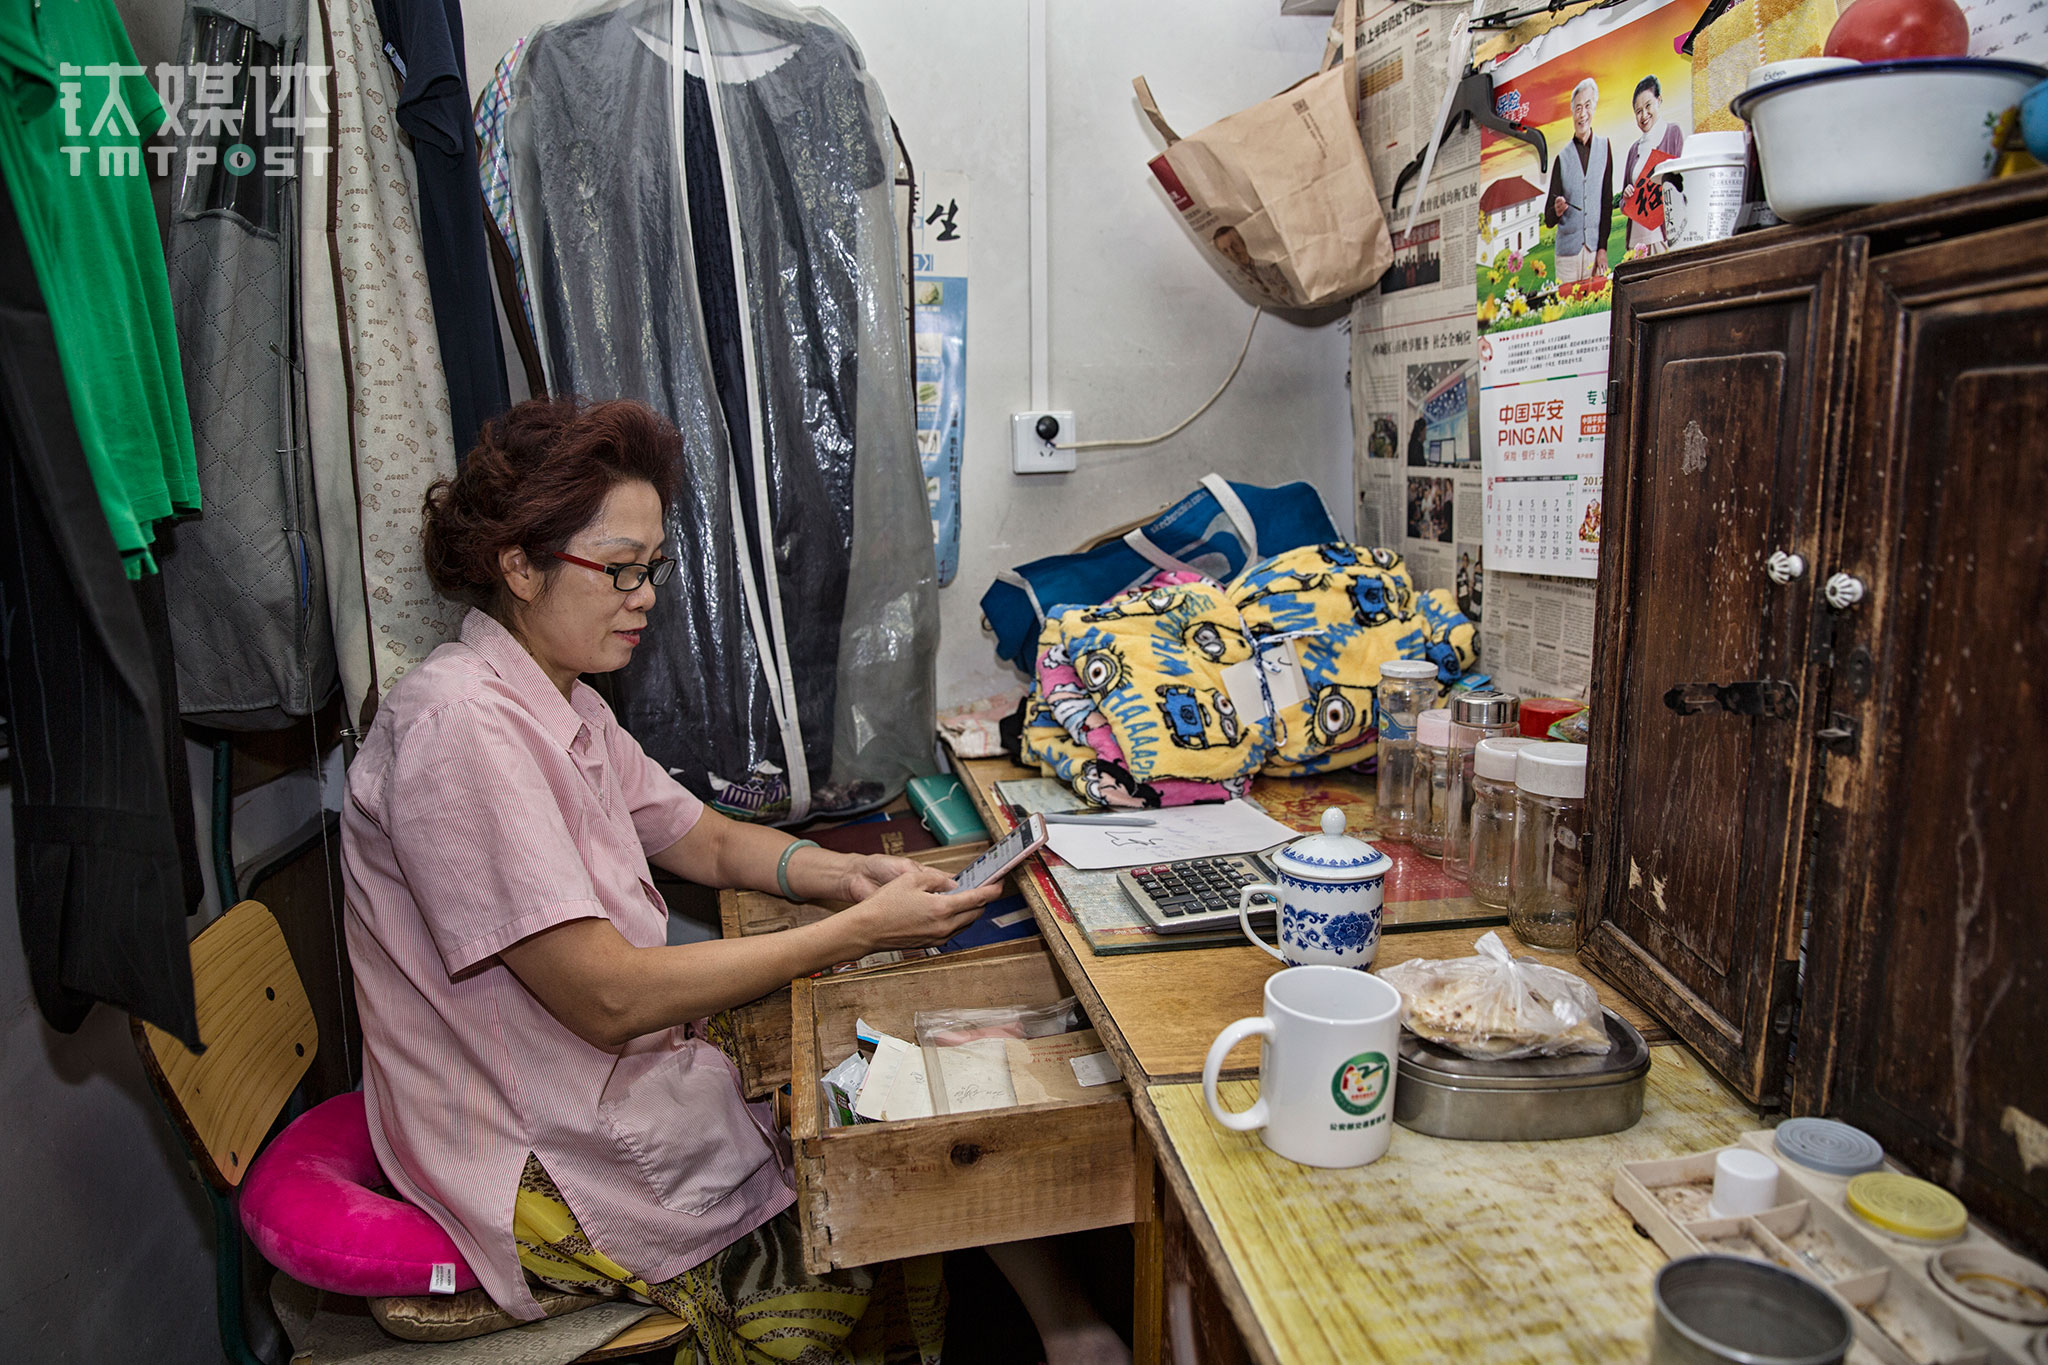 "On August 23rd, 2017, Dafang's office. The knit product section's group leader Li Hong was contacting clothes suppliers through WeChat. For Li Hong, customers' trust is what is keeping Li Hong at Dafang.  Seeing customers who came all the way from Tongzhou to shop at Dafang gives Li Hong a sense of achievement. ""Our long time customers want us to last. There aren't many stores like ours around nowadays and it's not convenient for them,"" she said."